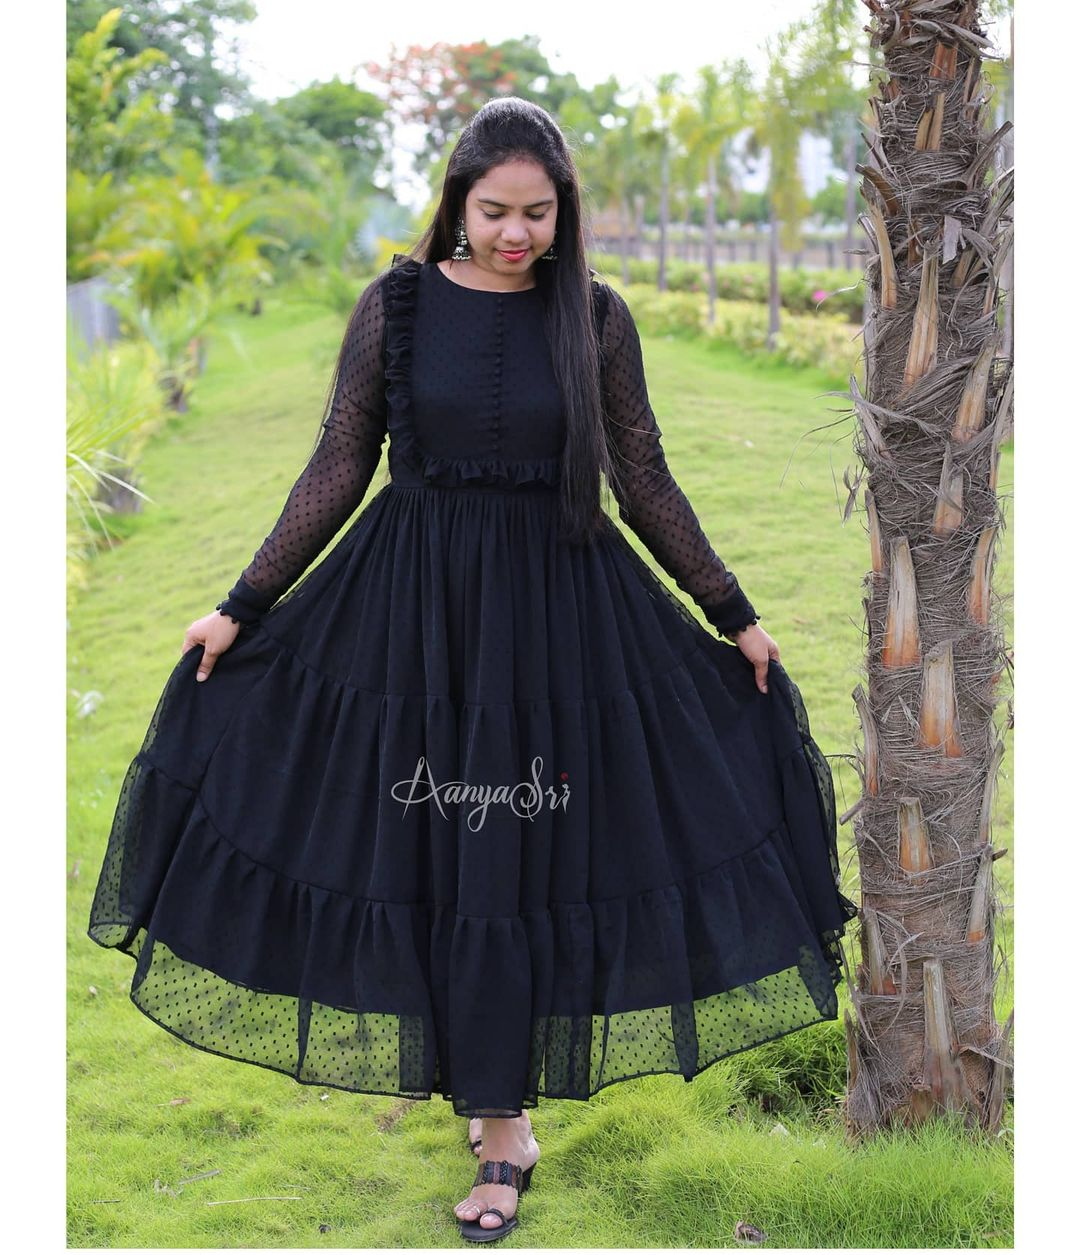 Black layered ankle length frock with ruffle and potlis detailing on the yoke . Comes with full sleeves and potlis on the sleeves and boat neck. Koyila. Price :  RS. 2600/- 2021-06-16